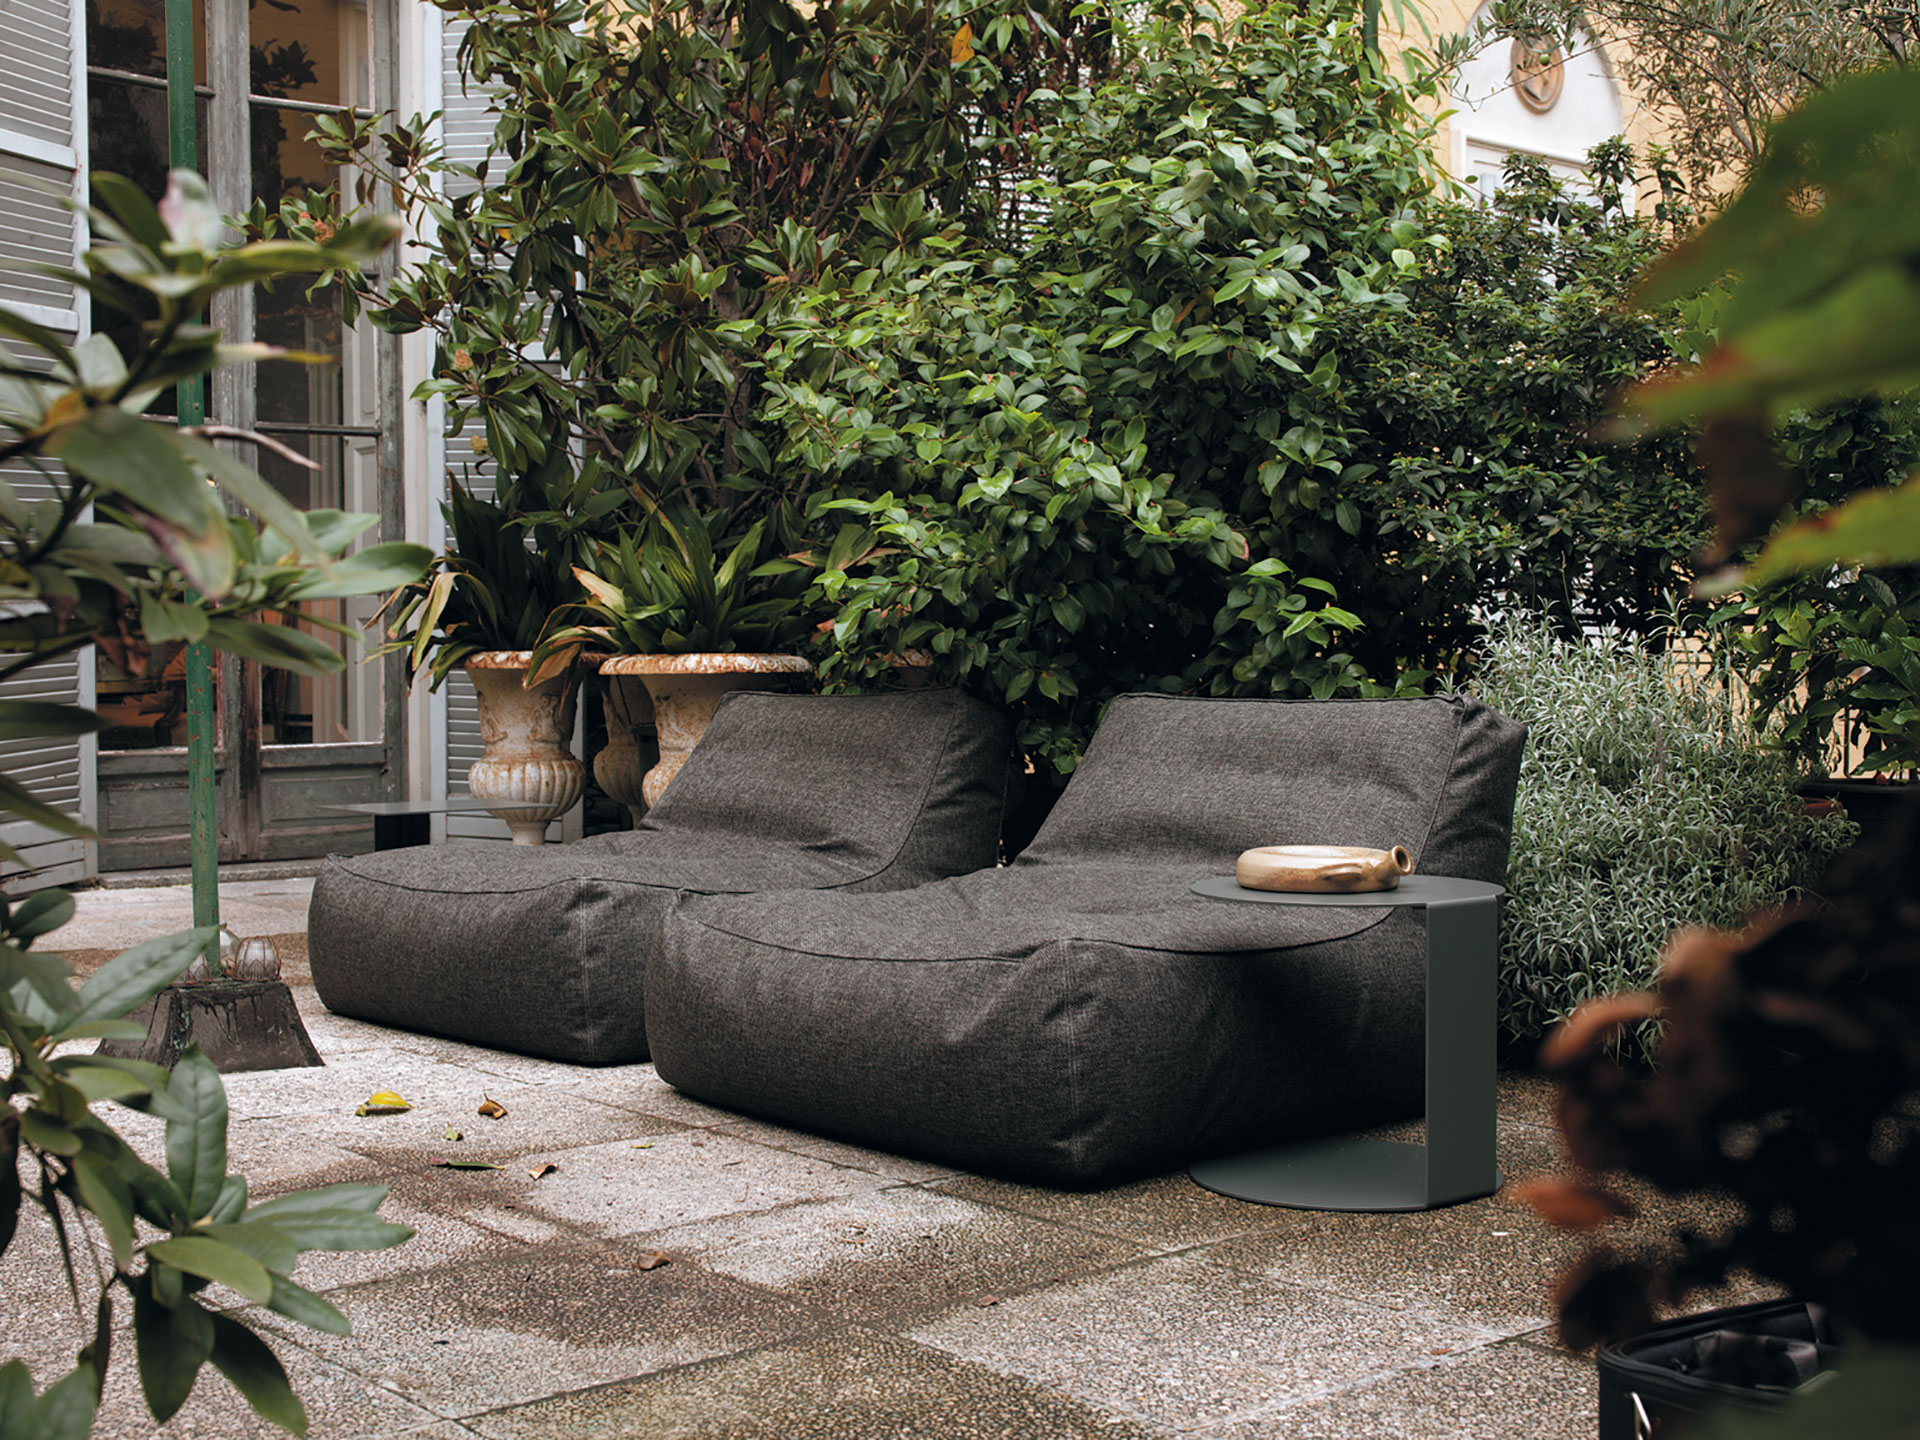 Italian Chaise Lounges by Verzelloni Habitat by Design